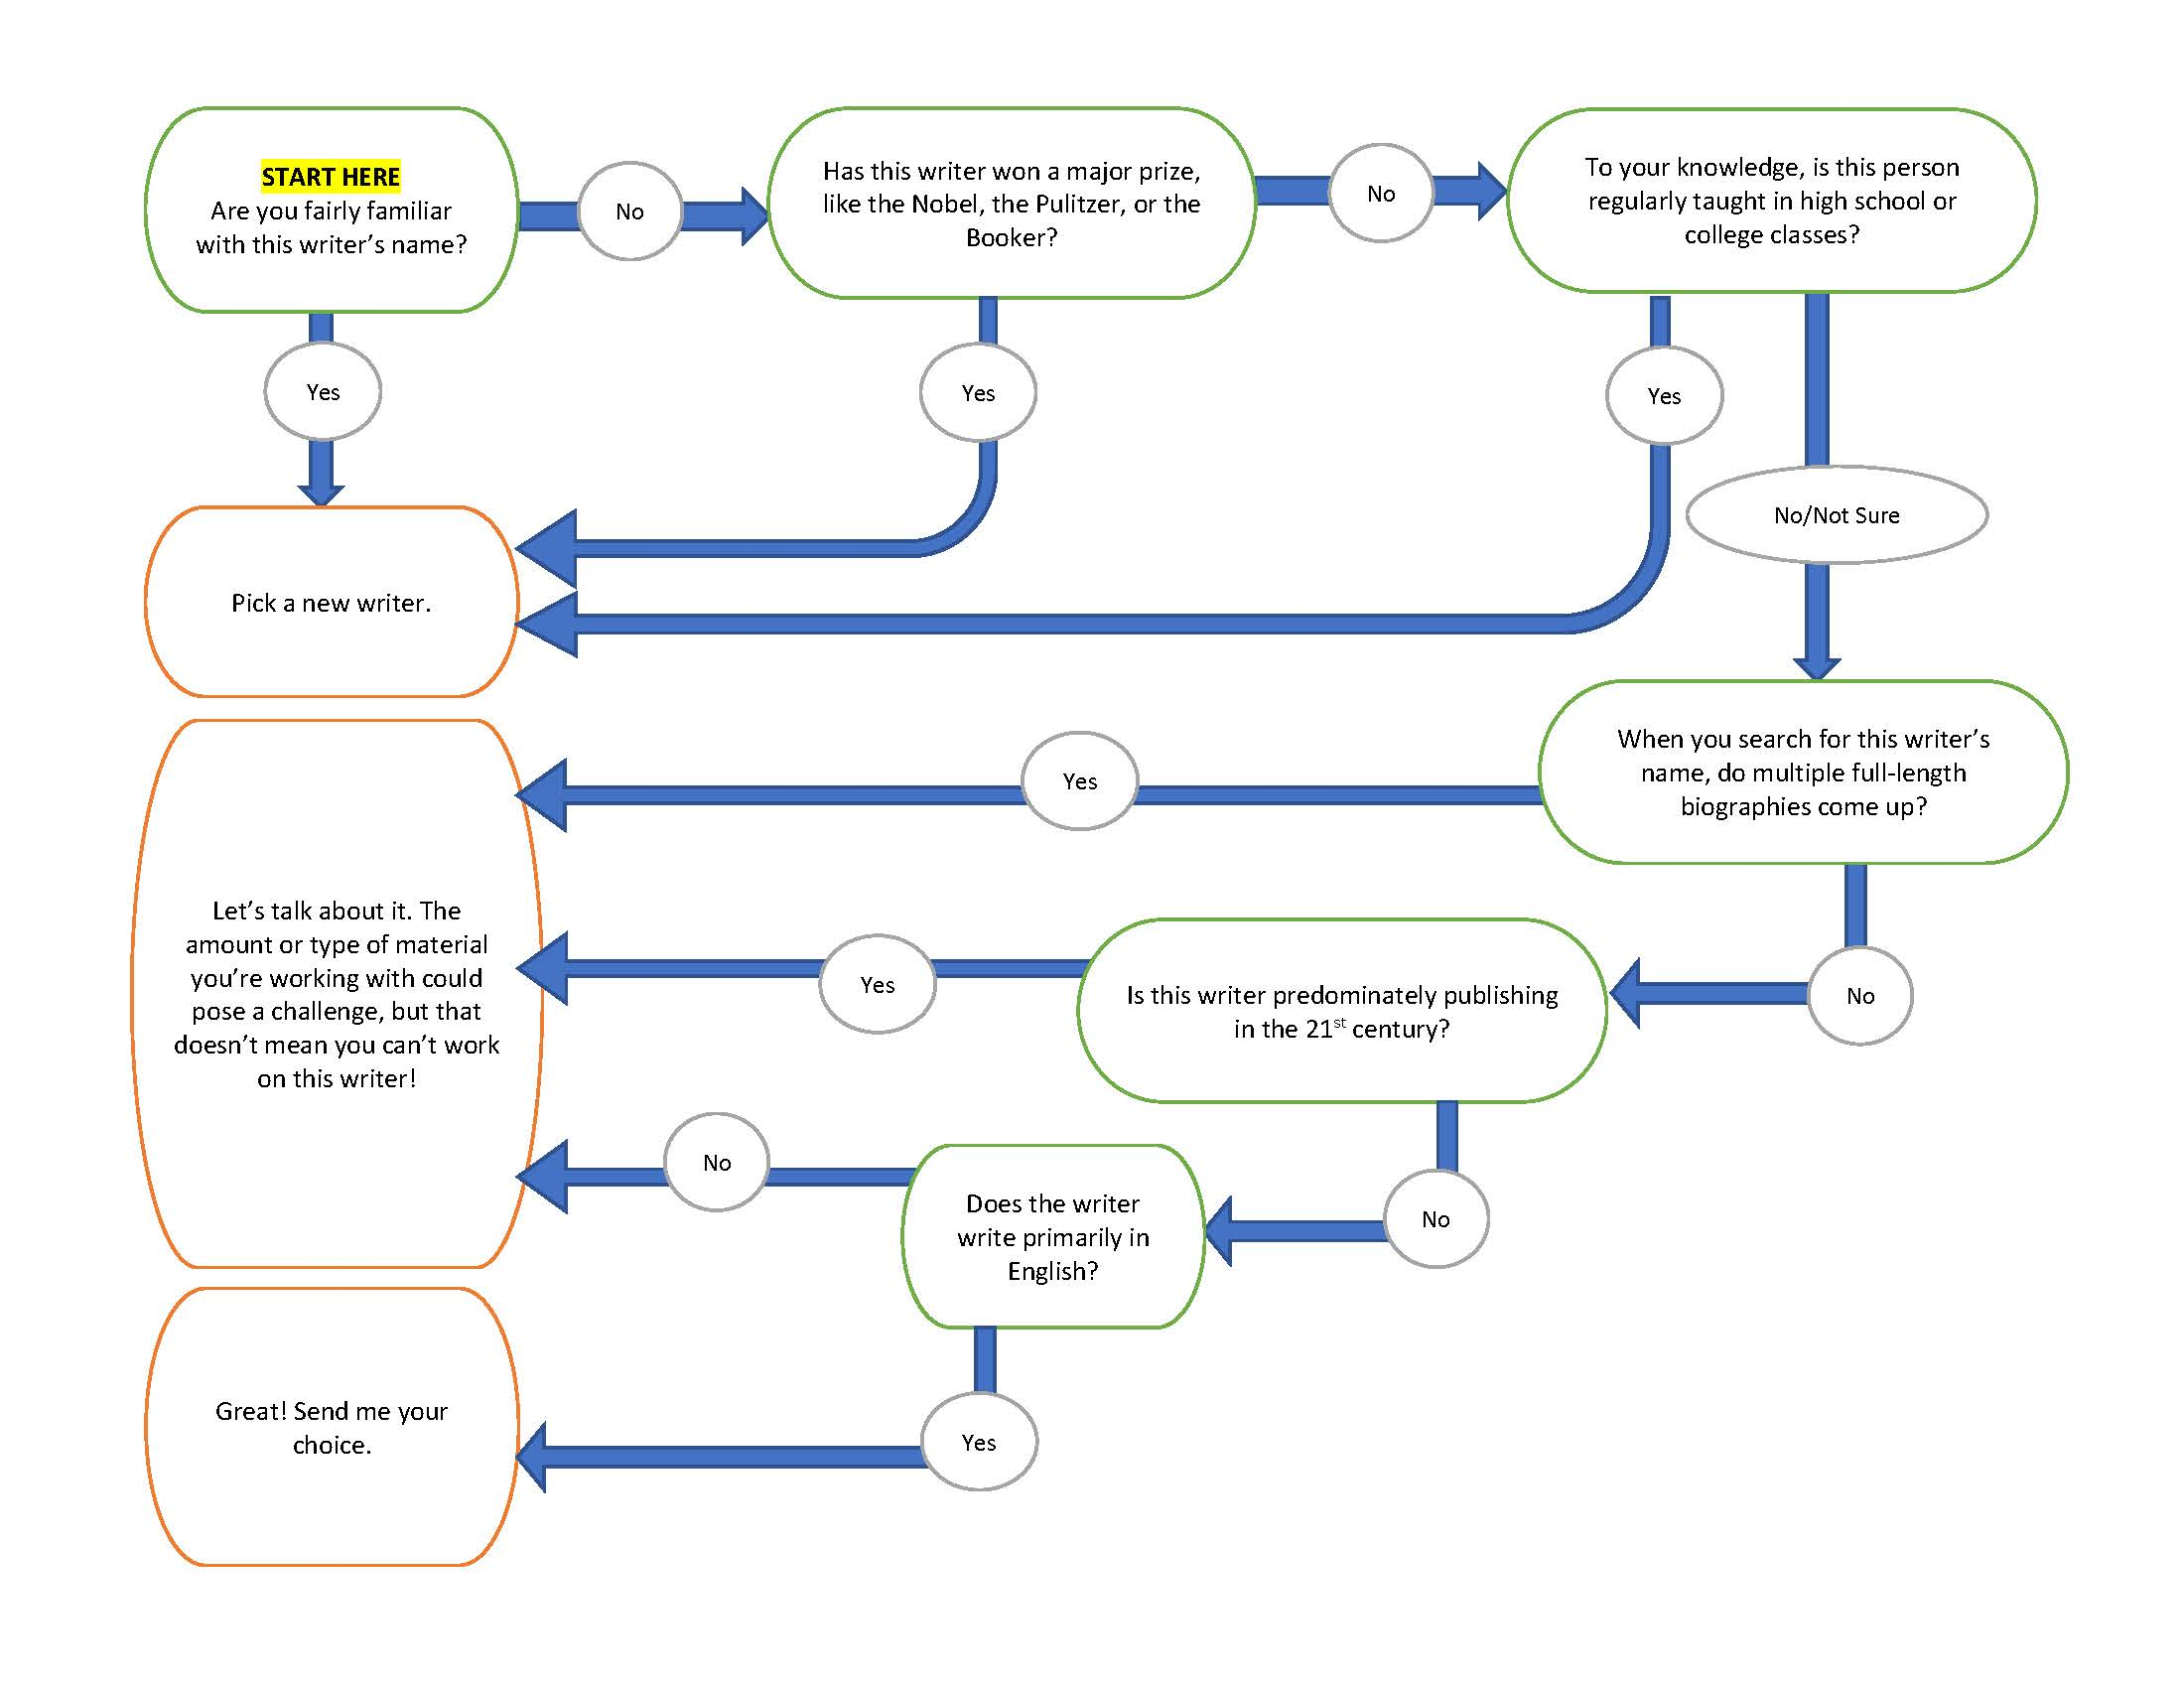 Flow chart to help you determine whether your choice of writer is appropriate for this assignment.